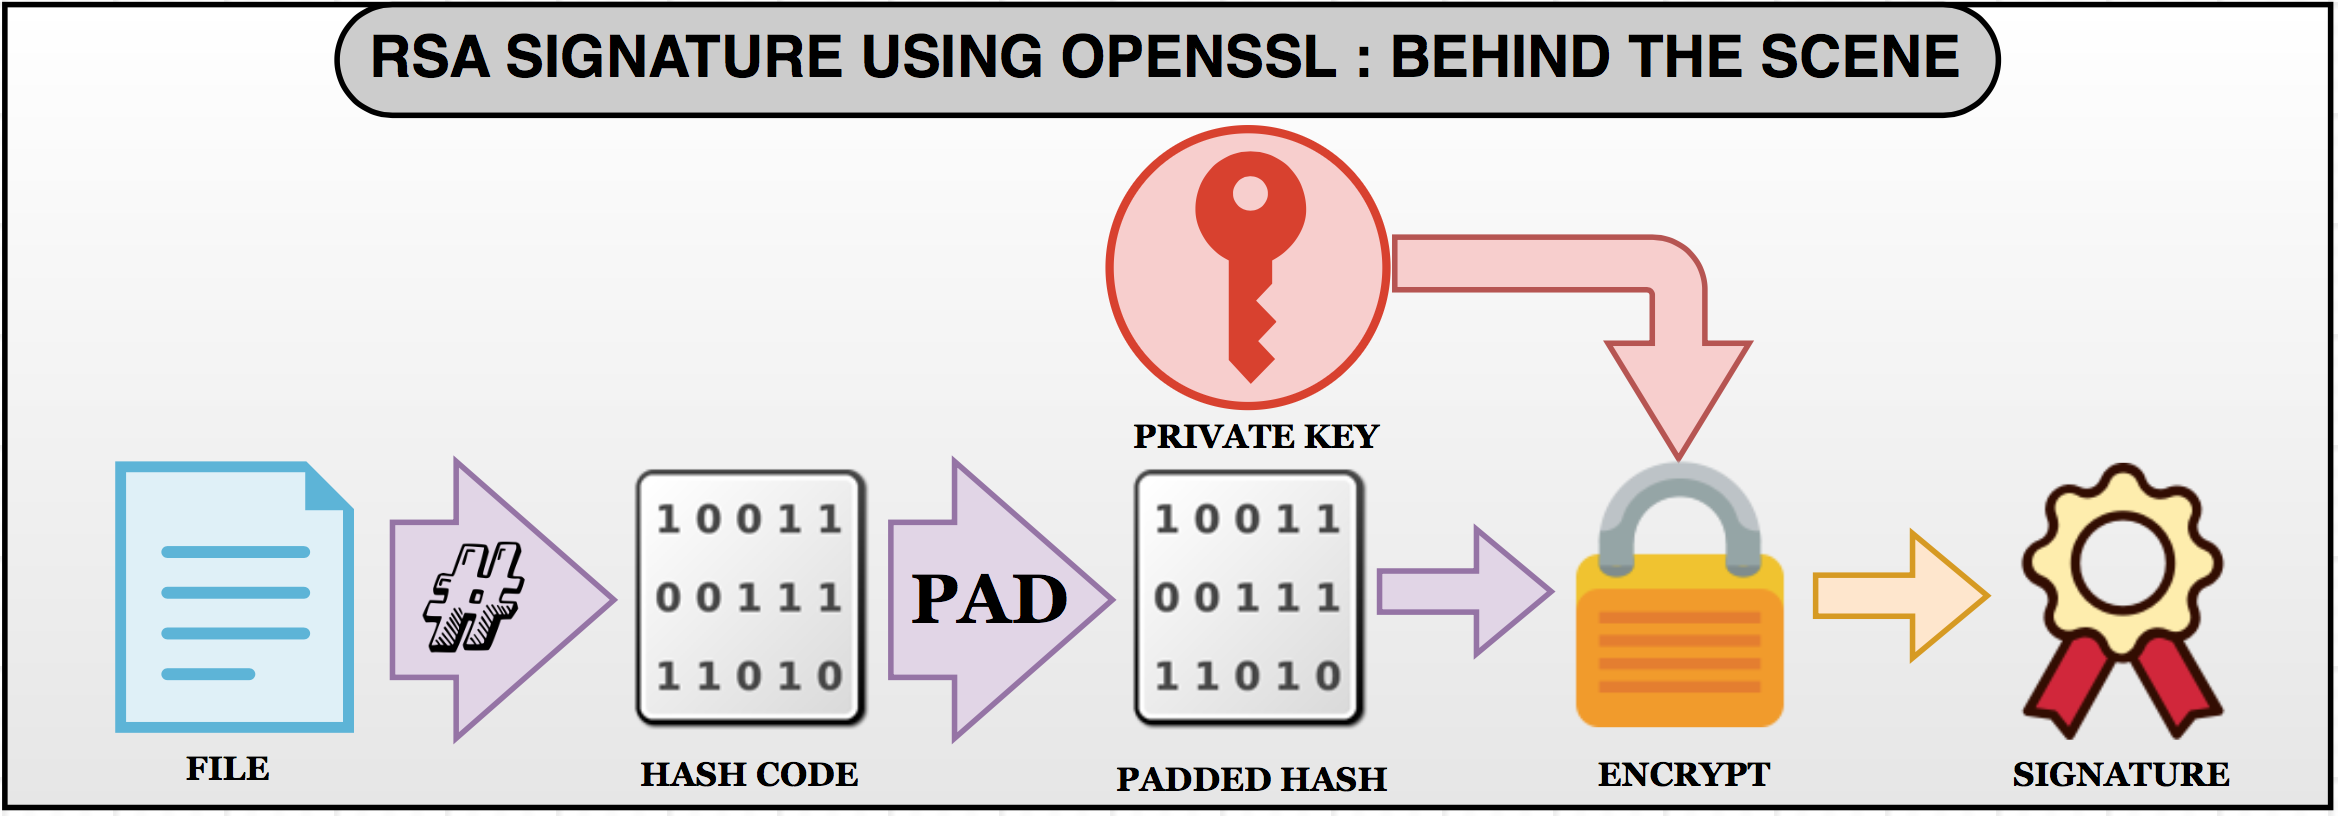 RSA sign and verify using Openssl : Behind the scene